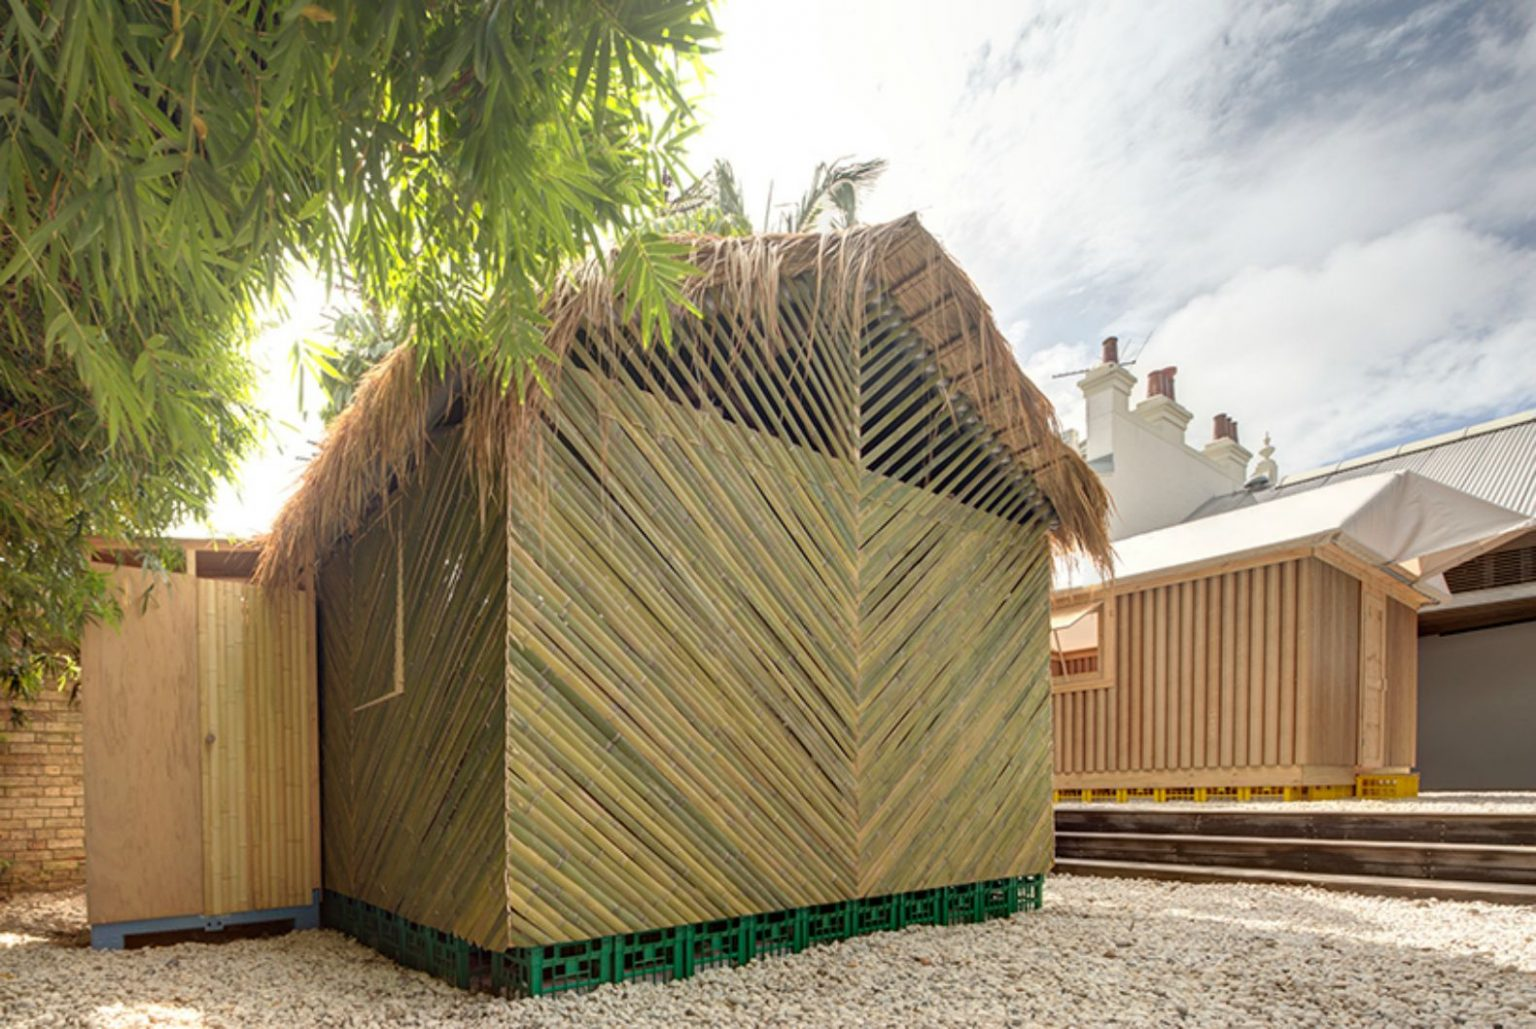 These emergency shelters can later be converted into permanent homes